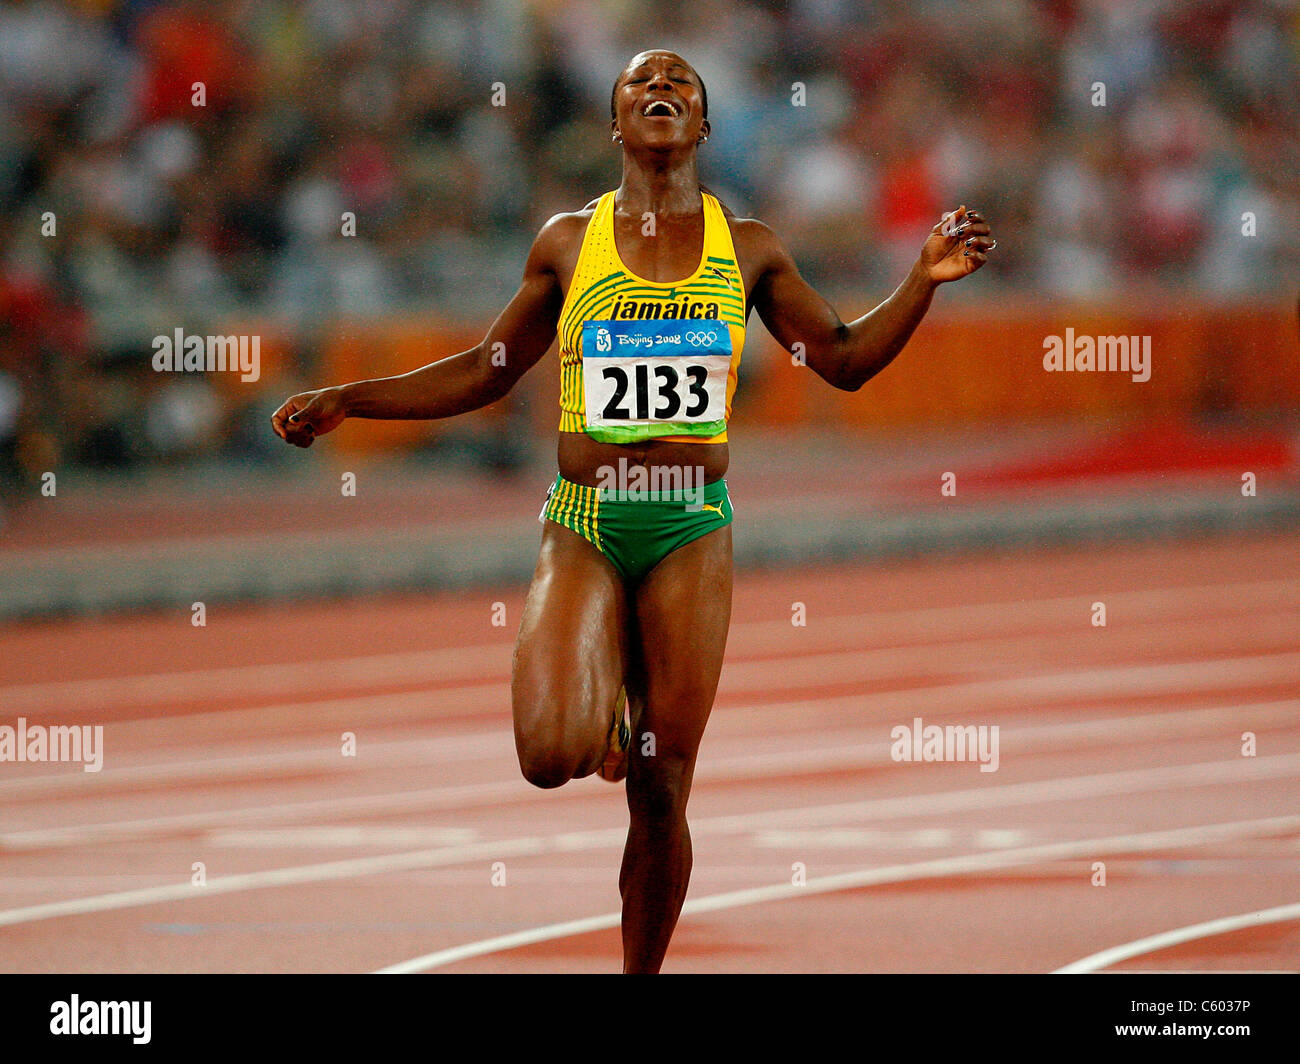 Forum on this topic: Athena (b. 1988), veronica-campbell-brown-7-olympic-medals/